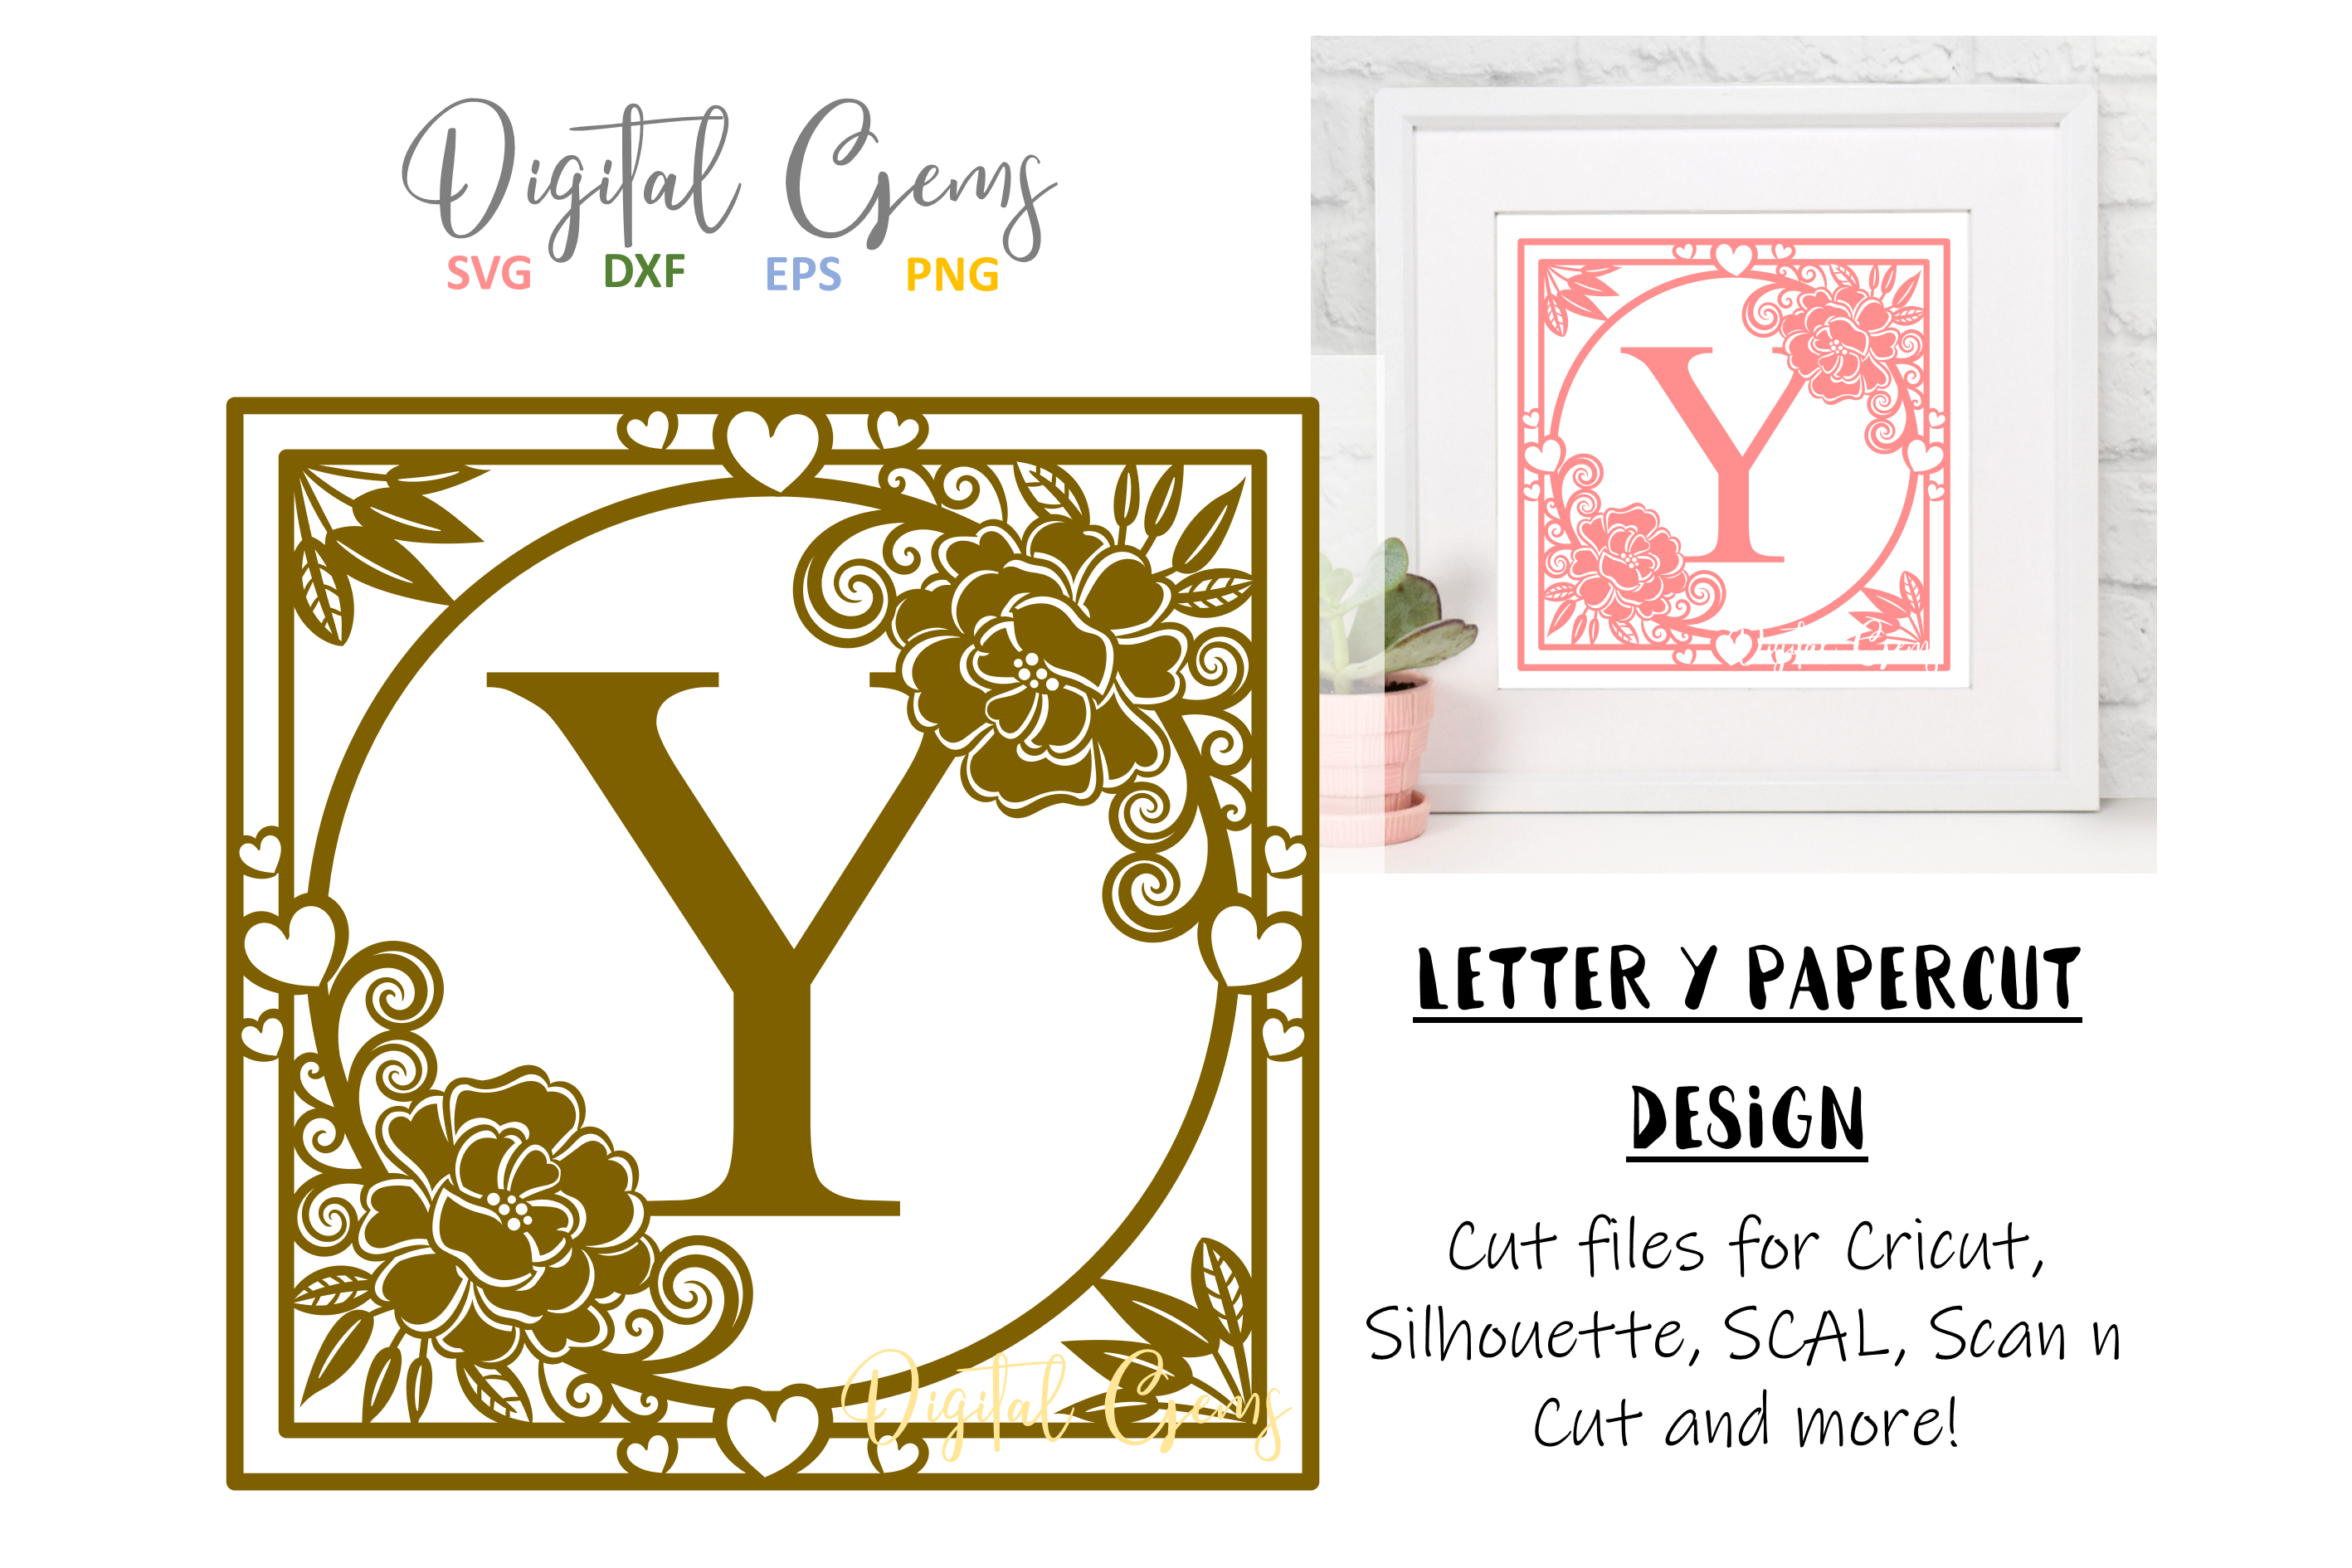 Letter Y papercut design. SVG / DXF / EPS files example image 1